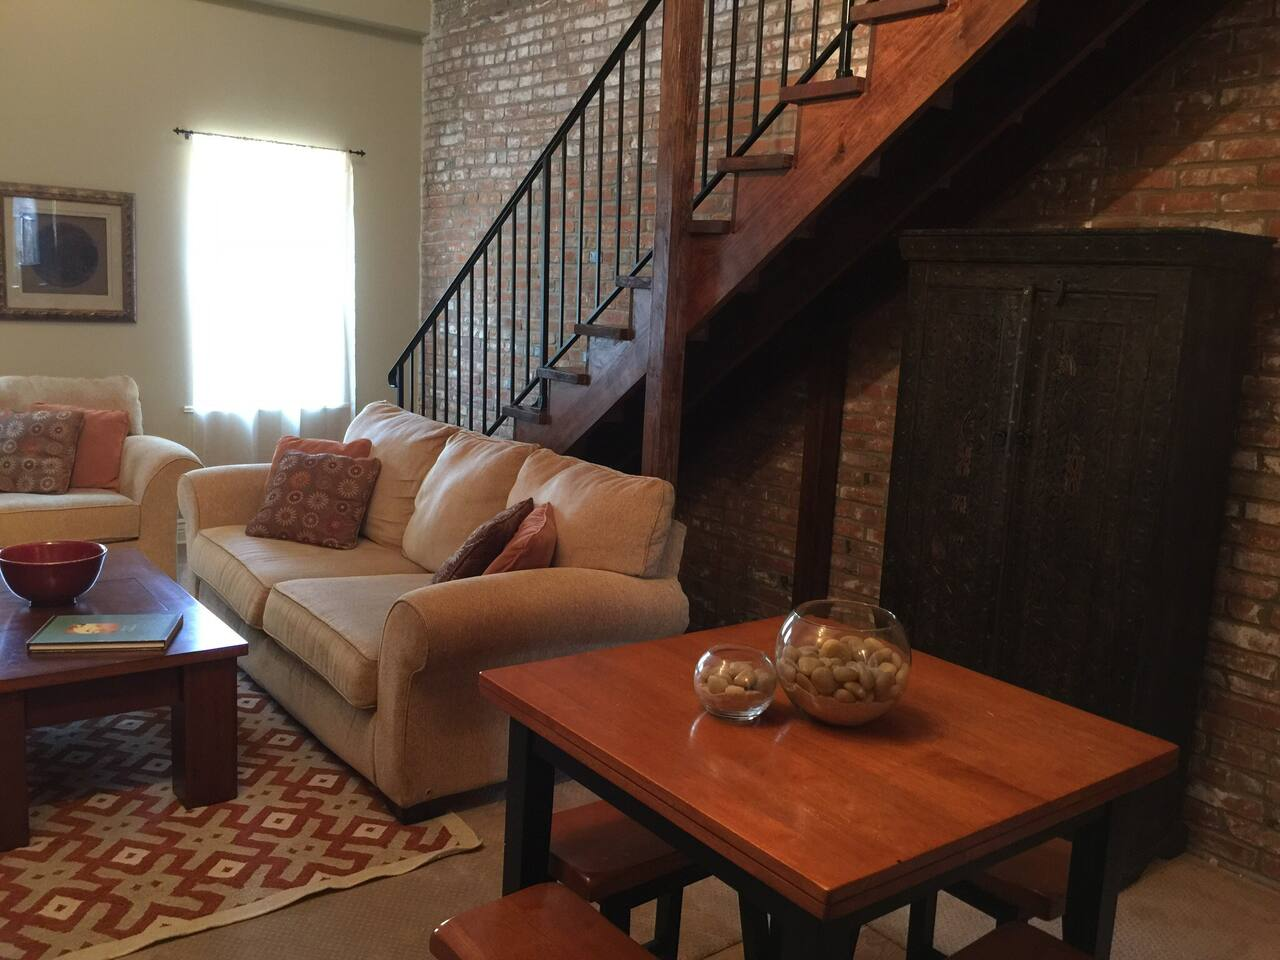 Soulard Residence, Asian Loft Suite - Apartments for Rent in St ...